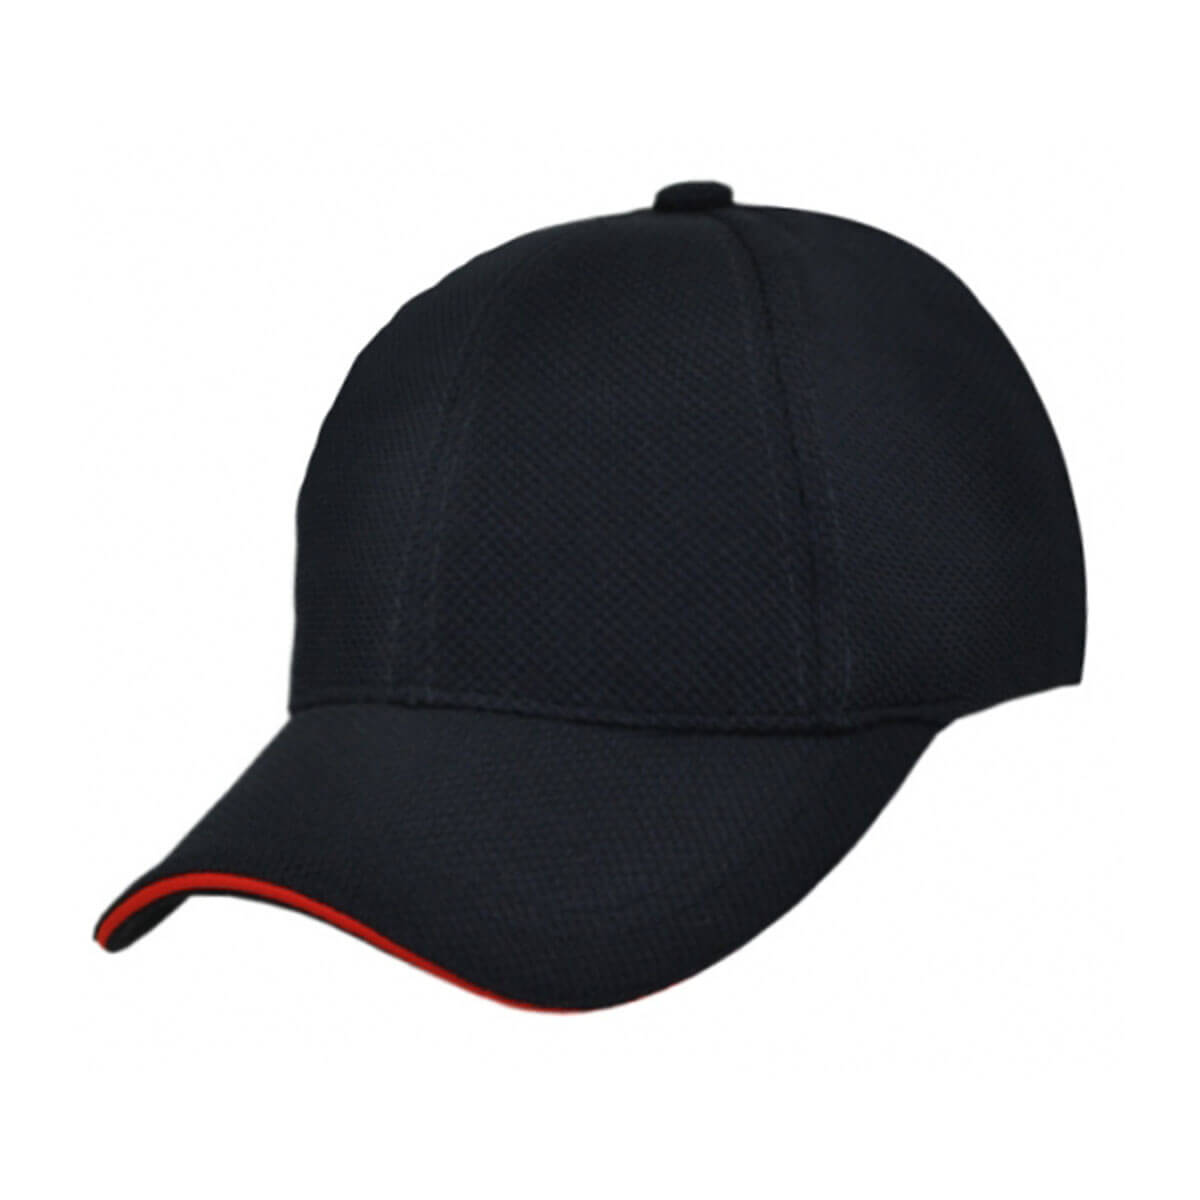 PQ Mesh Plain Sandwich Design Cap-Black / Red